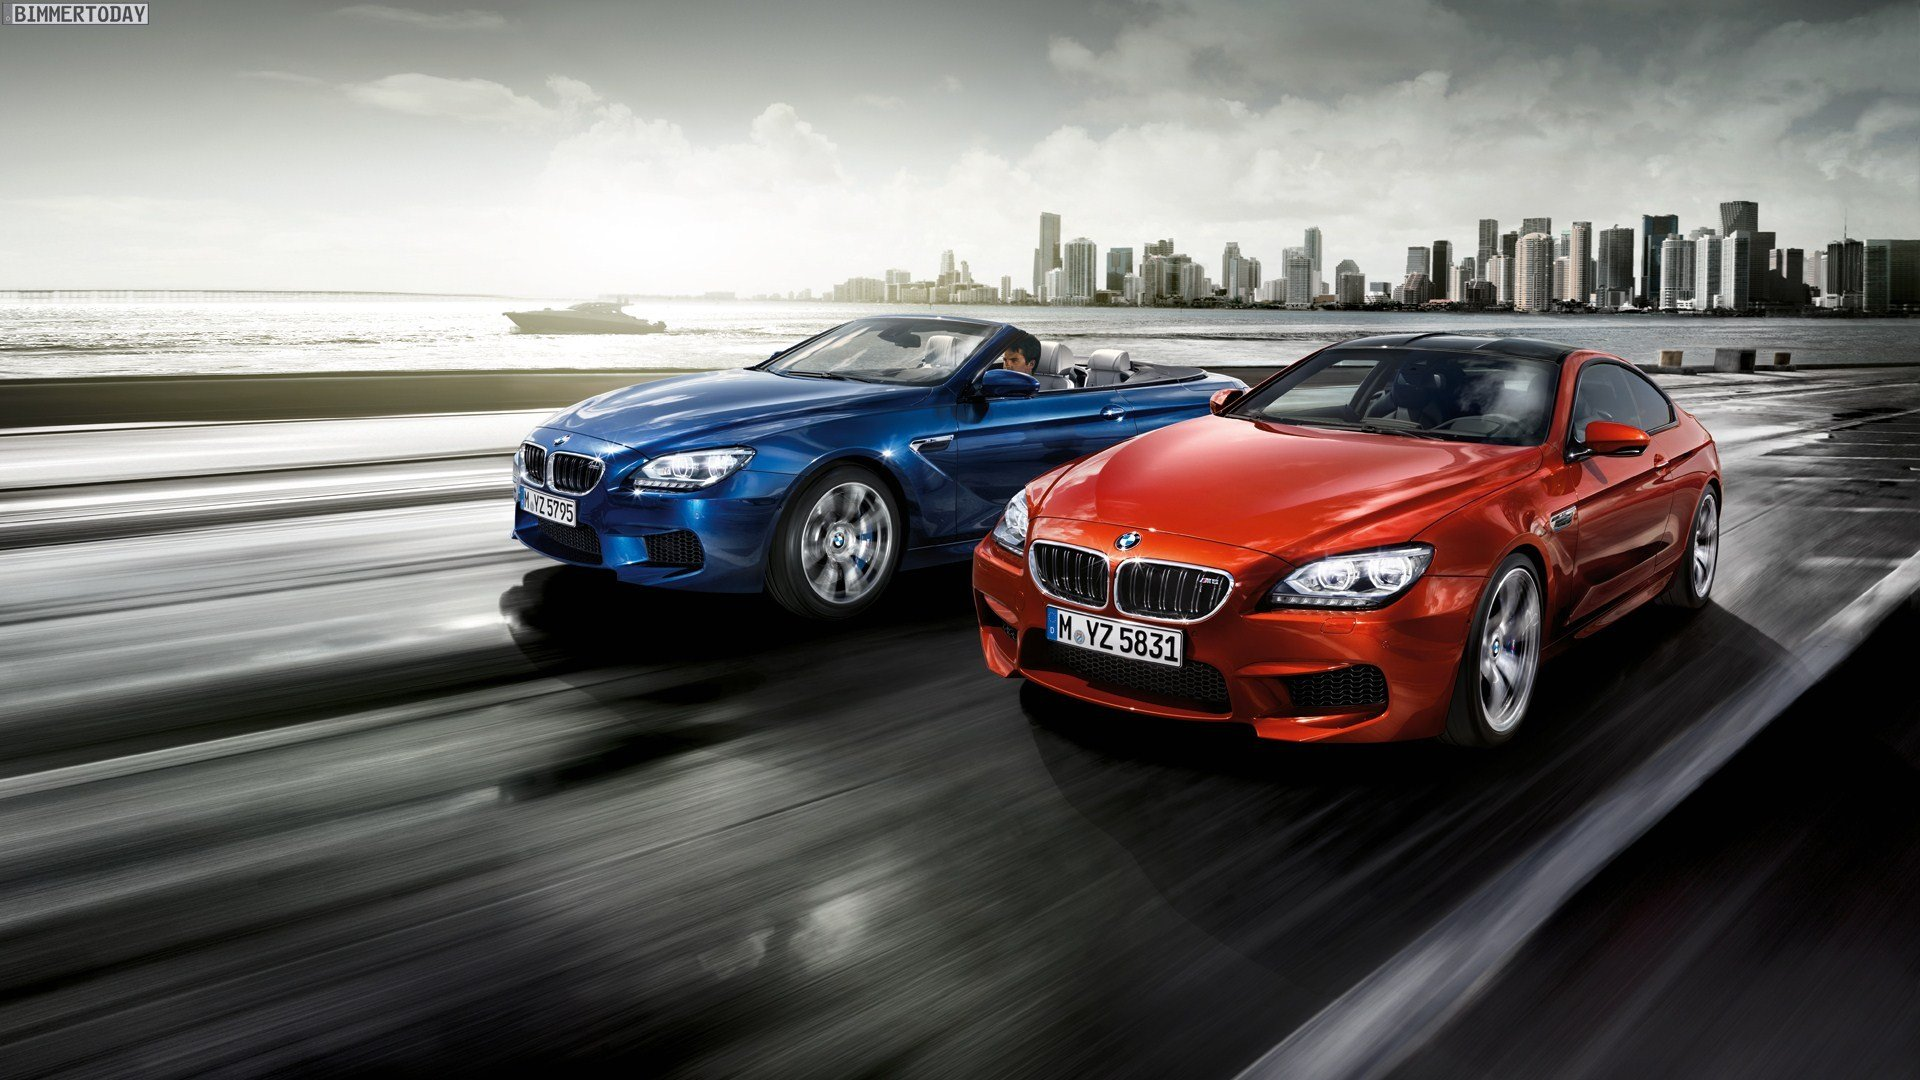 Latest Bmw Wallpapers Bmw M Coupe And Cabriolet Bmw M Photo Free Download